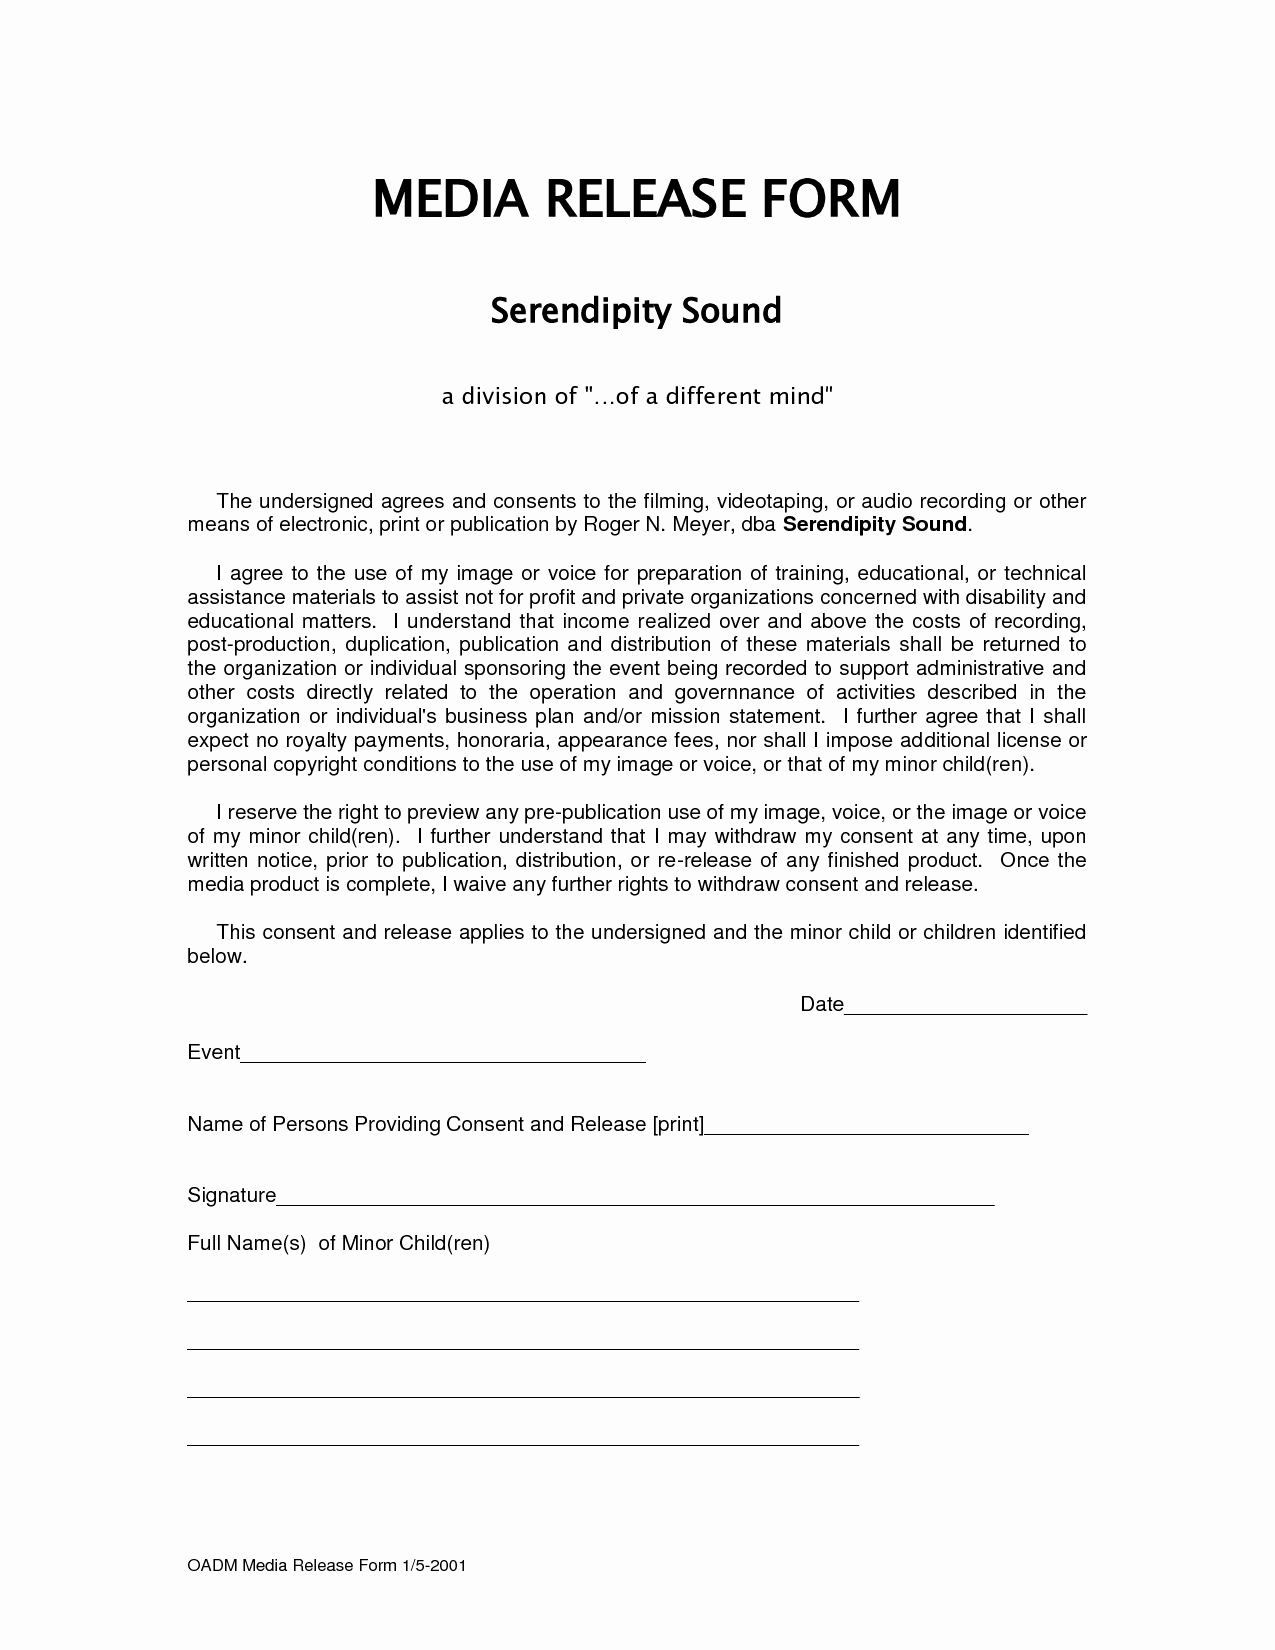 Social Media Release form Template Unique form Media Release form